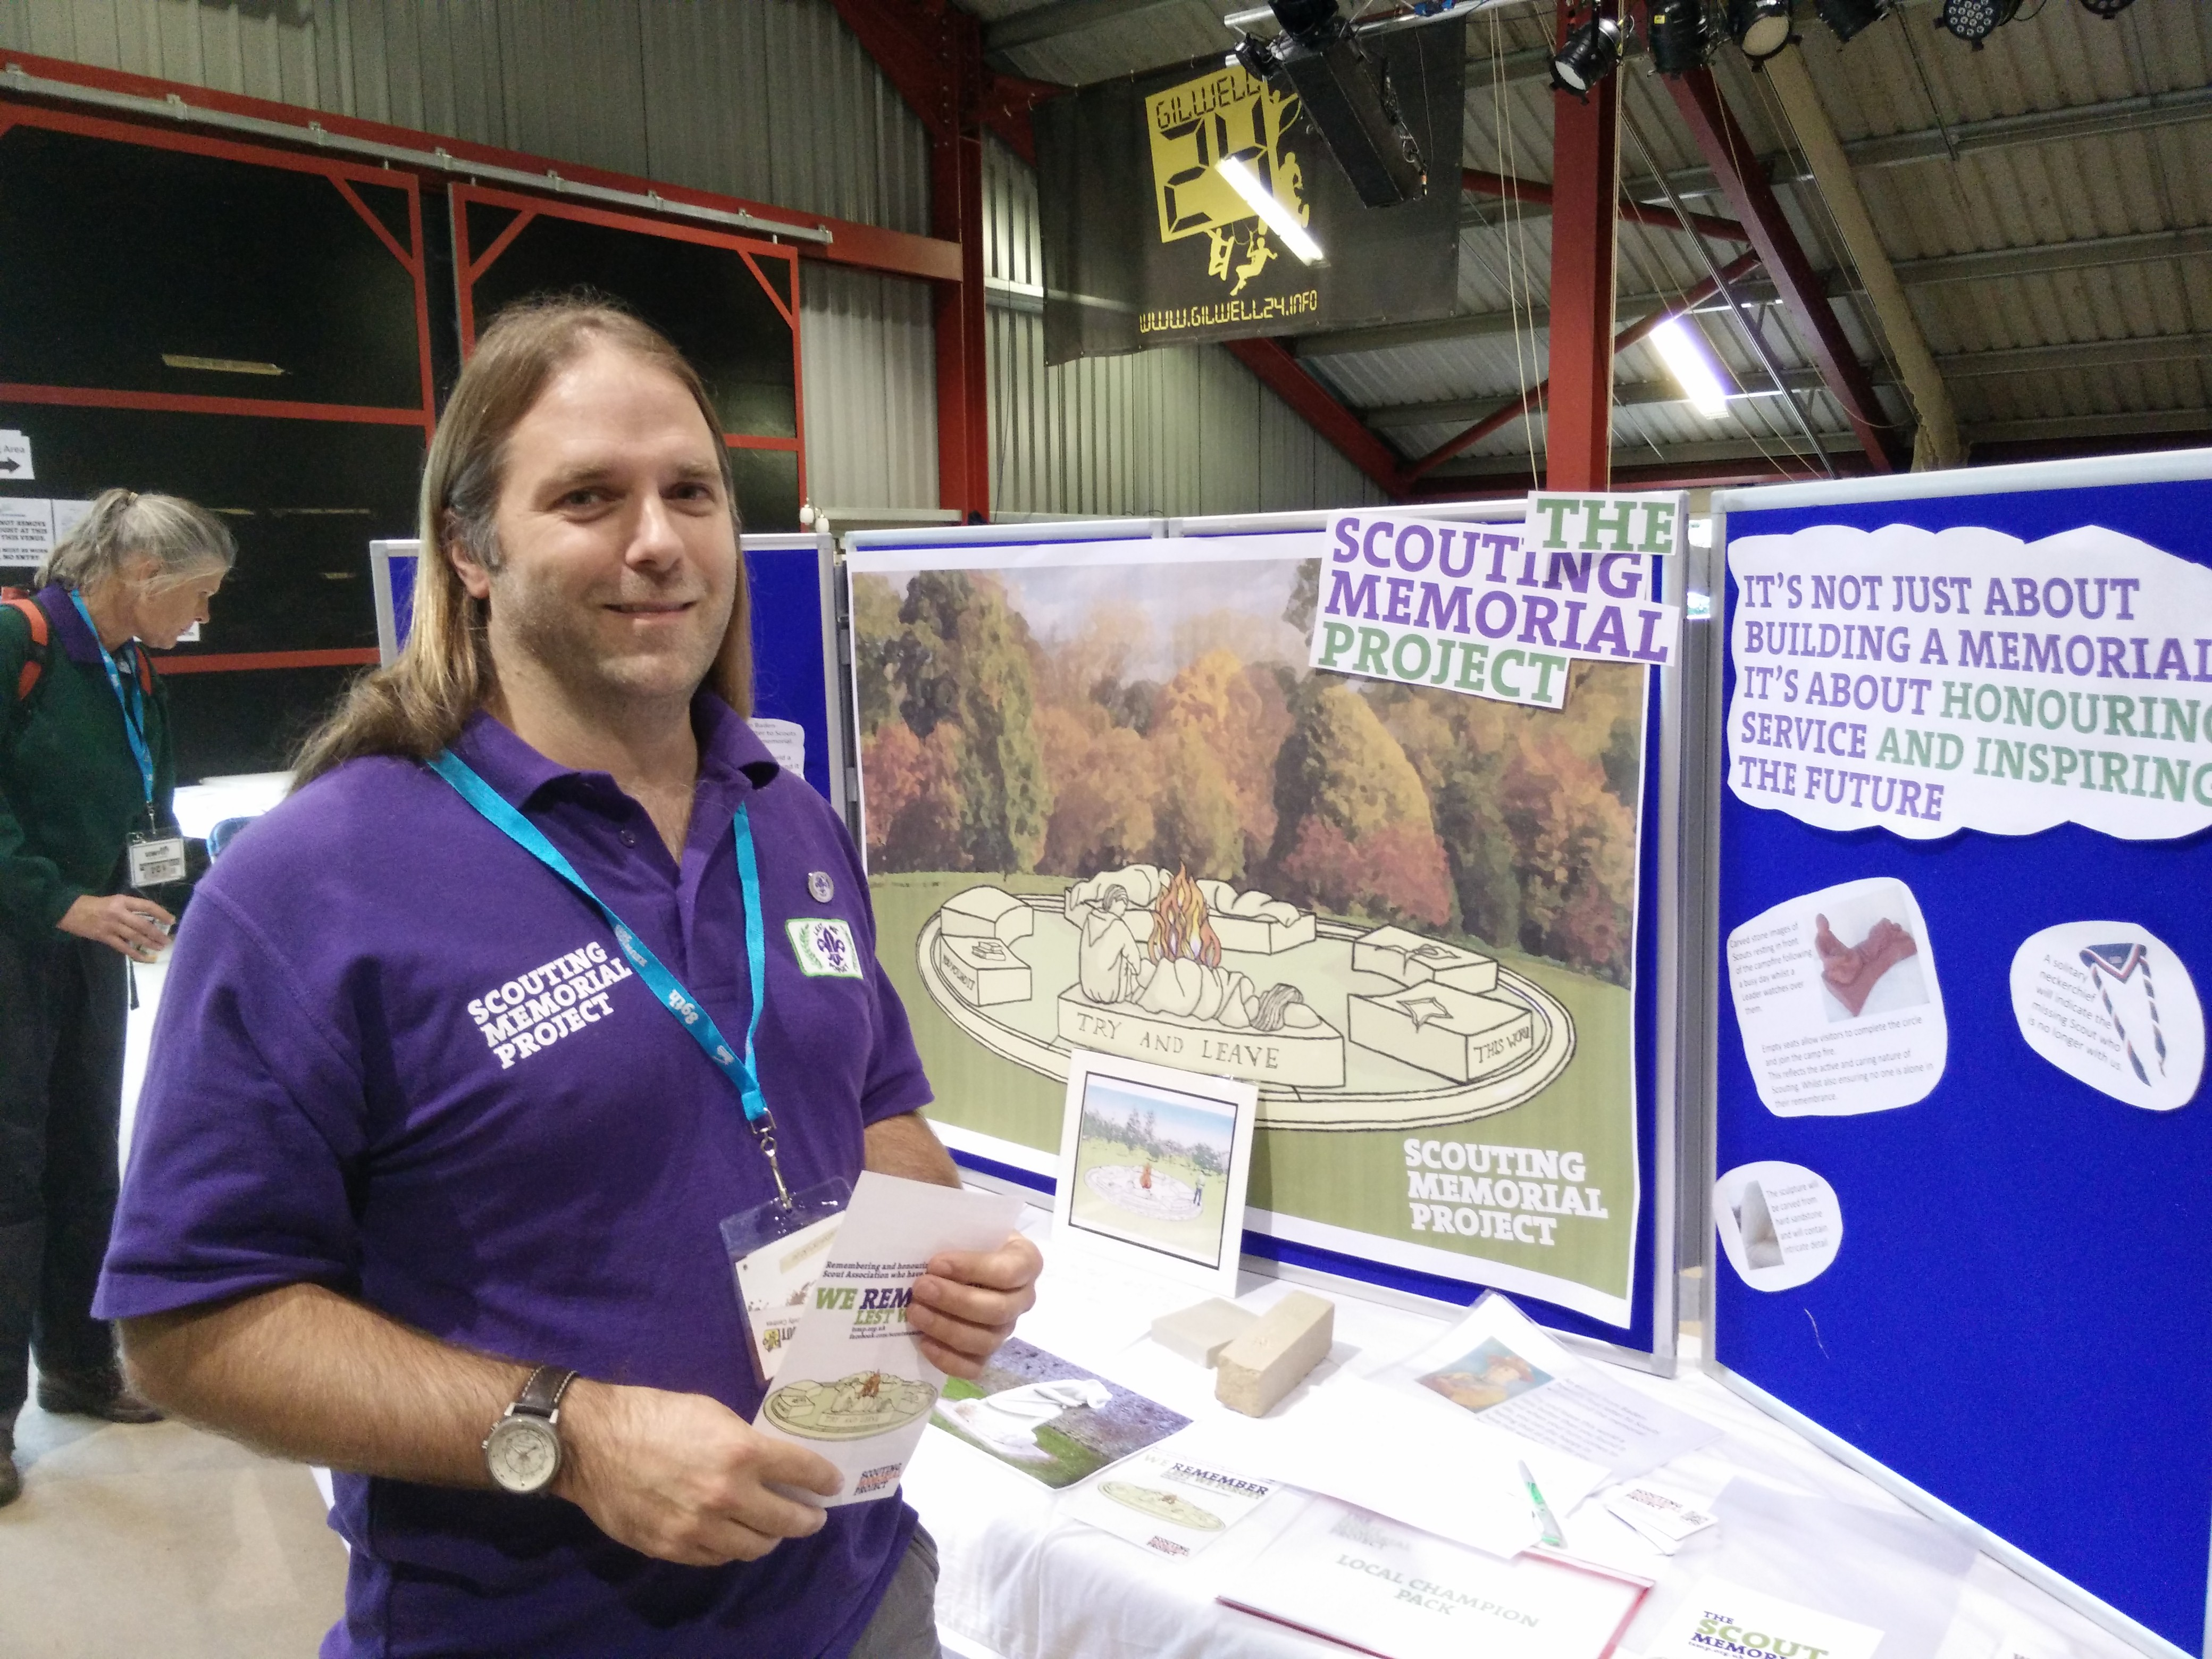 Reunion 2015: Scouting Memorial Project